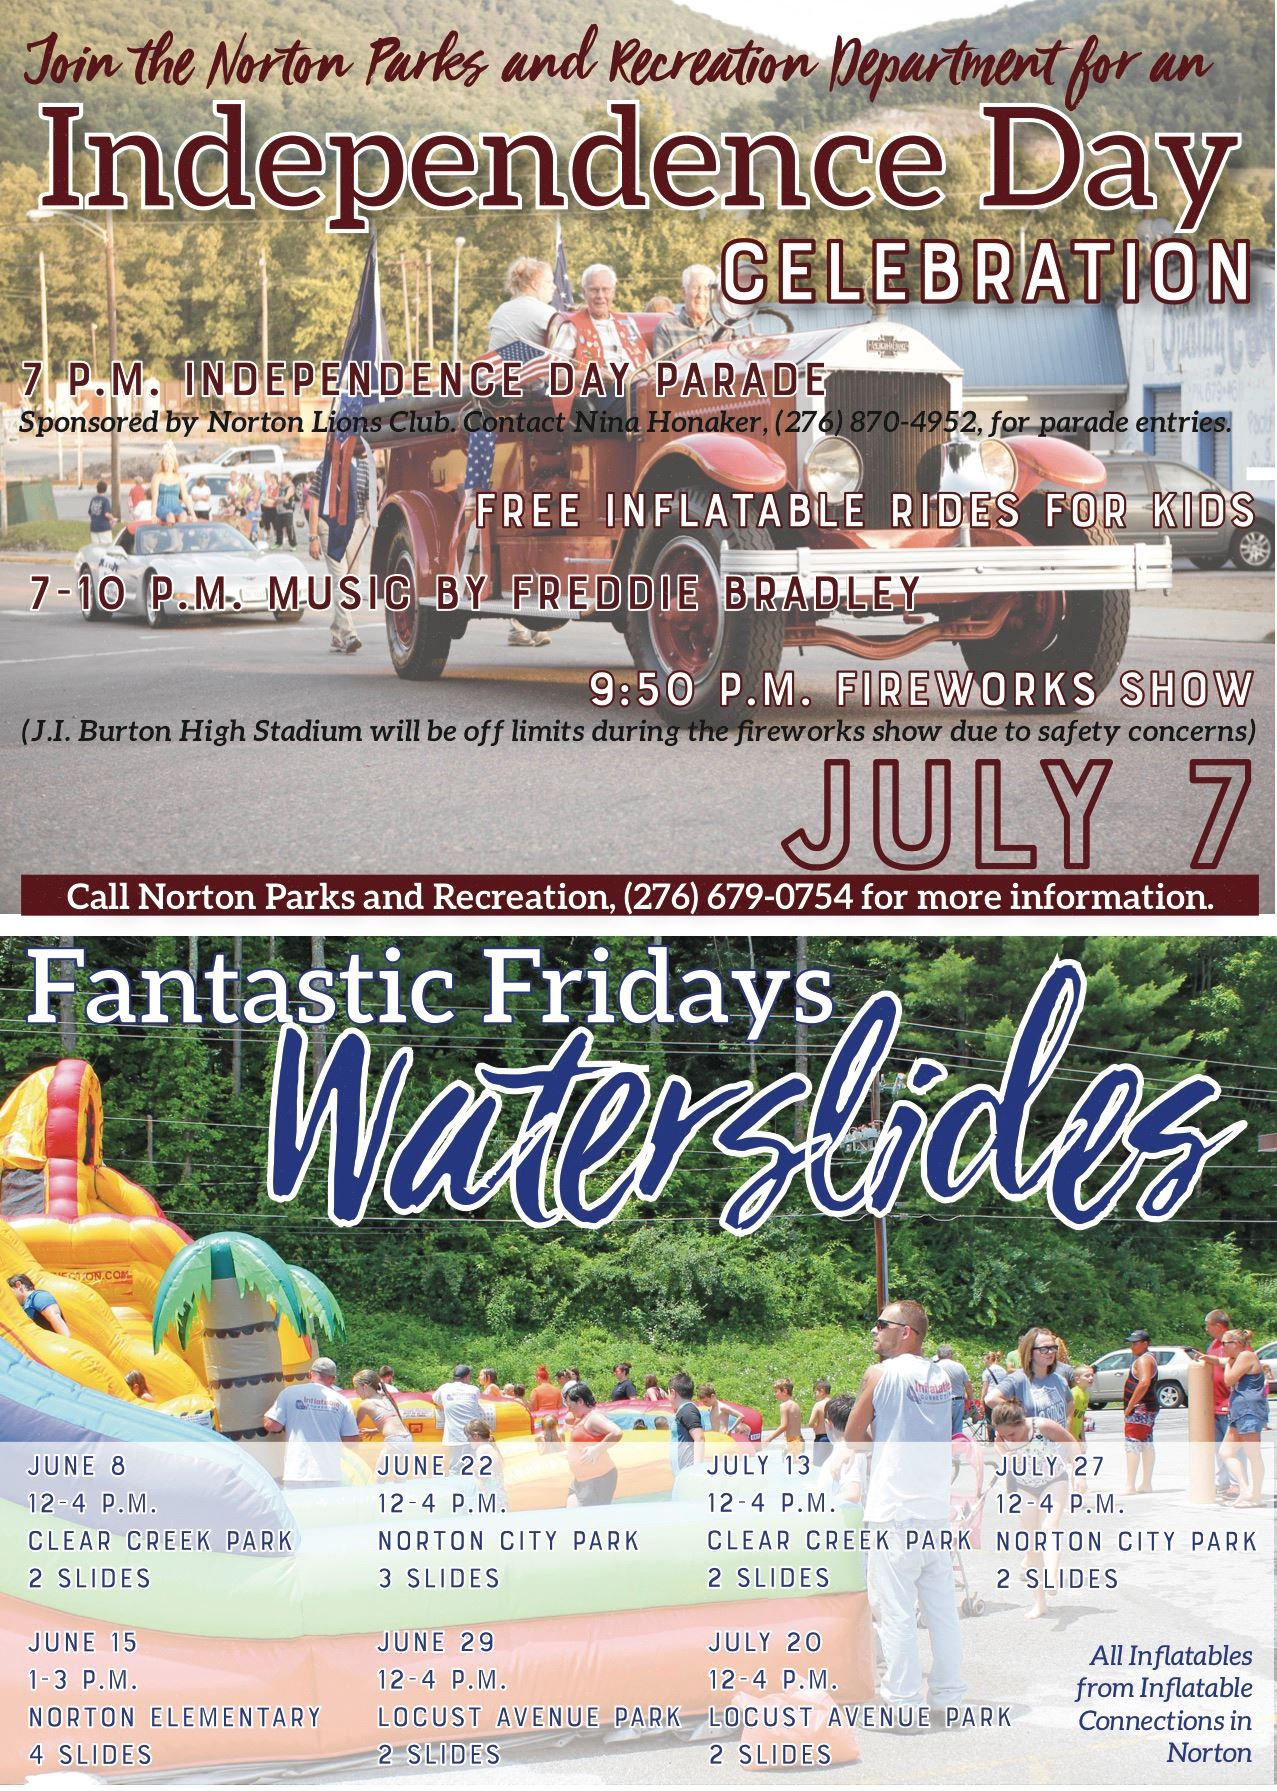 Photo of a flyer advertising waterslides and Independence Day Celebration